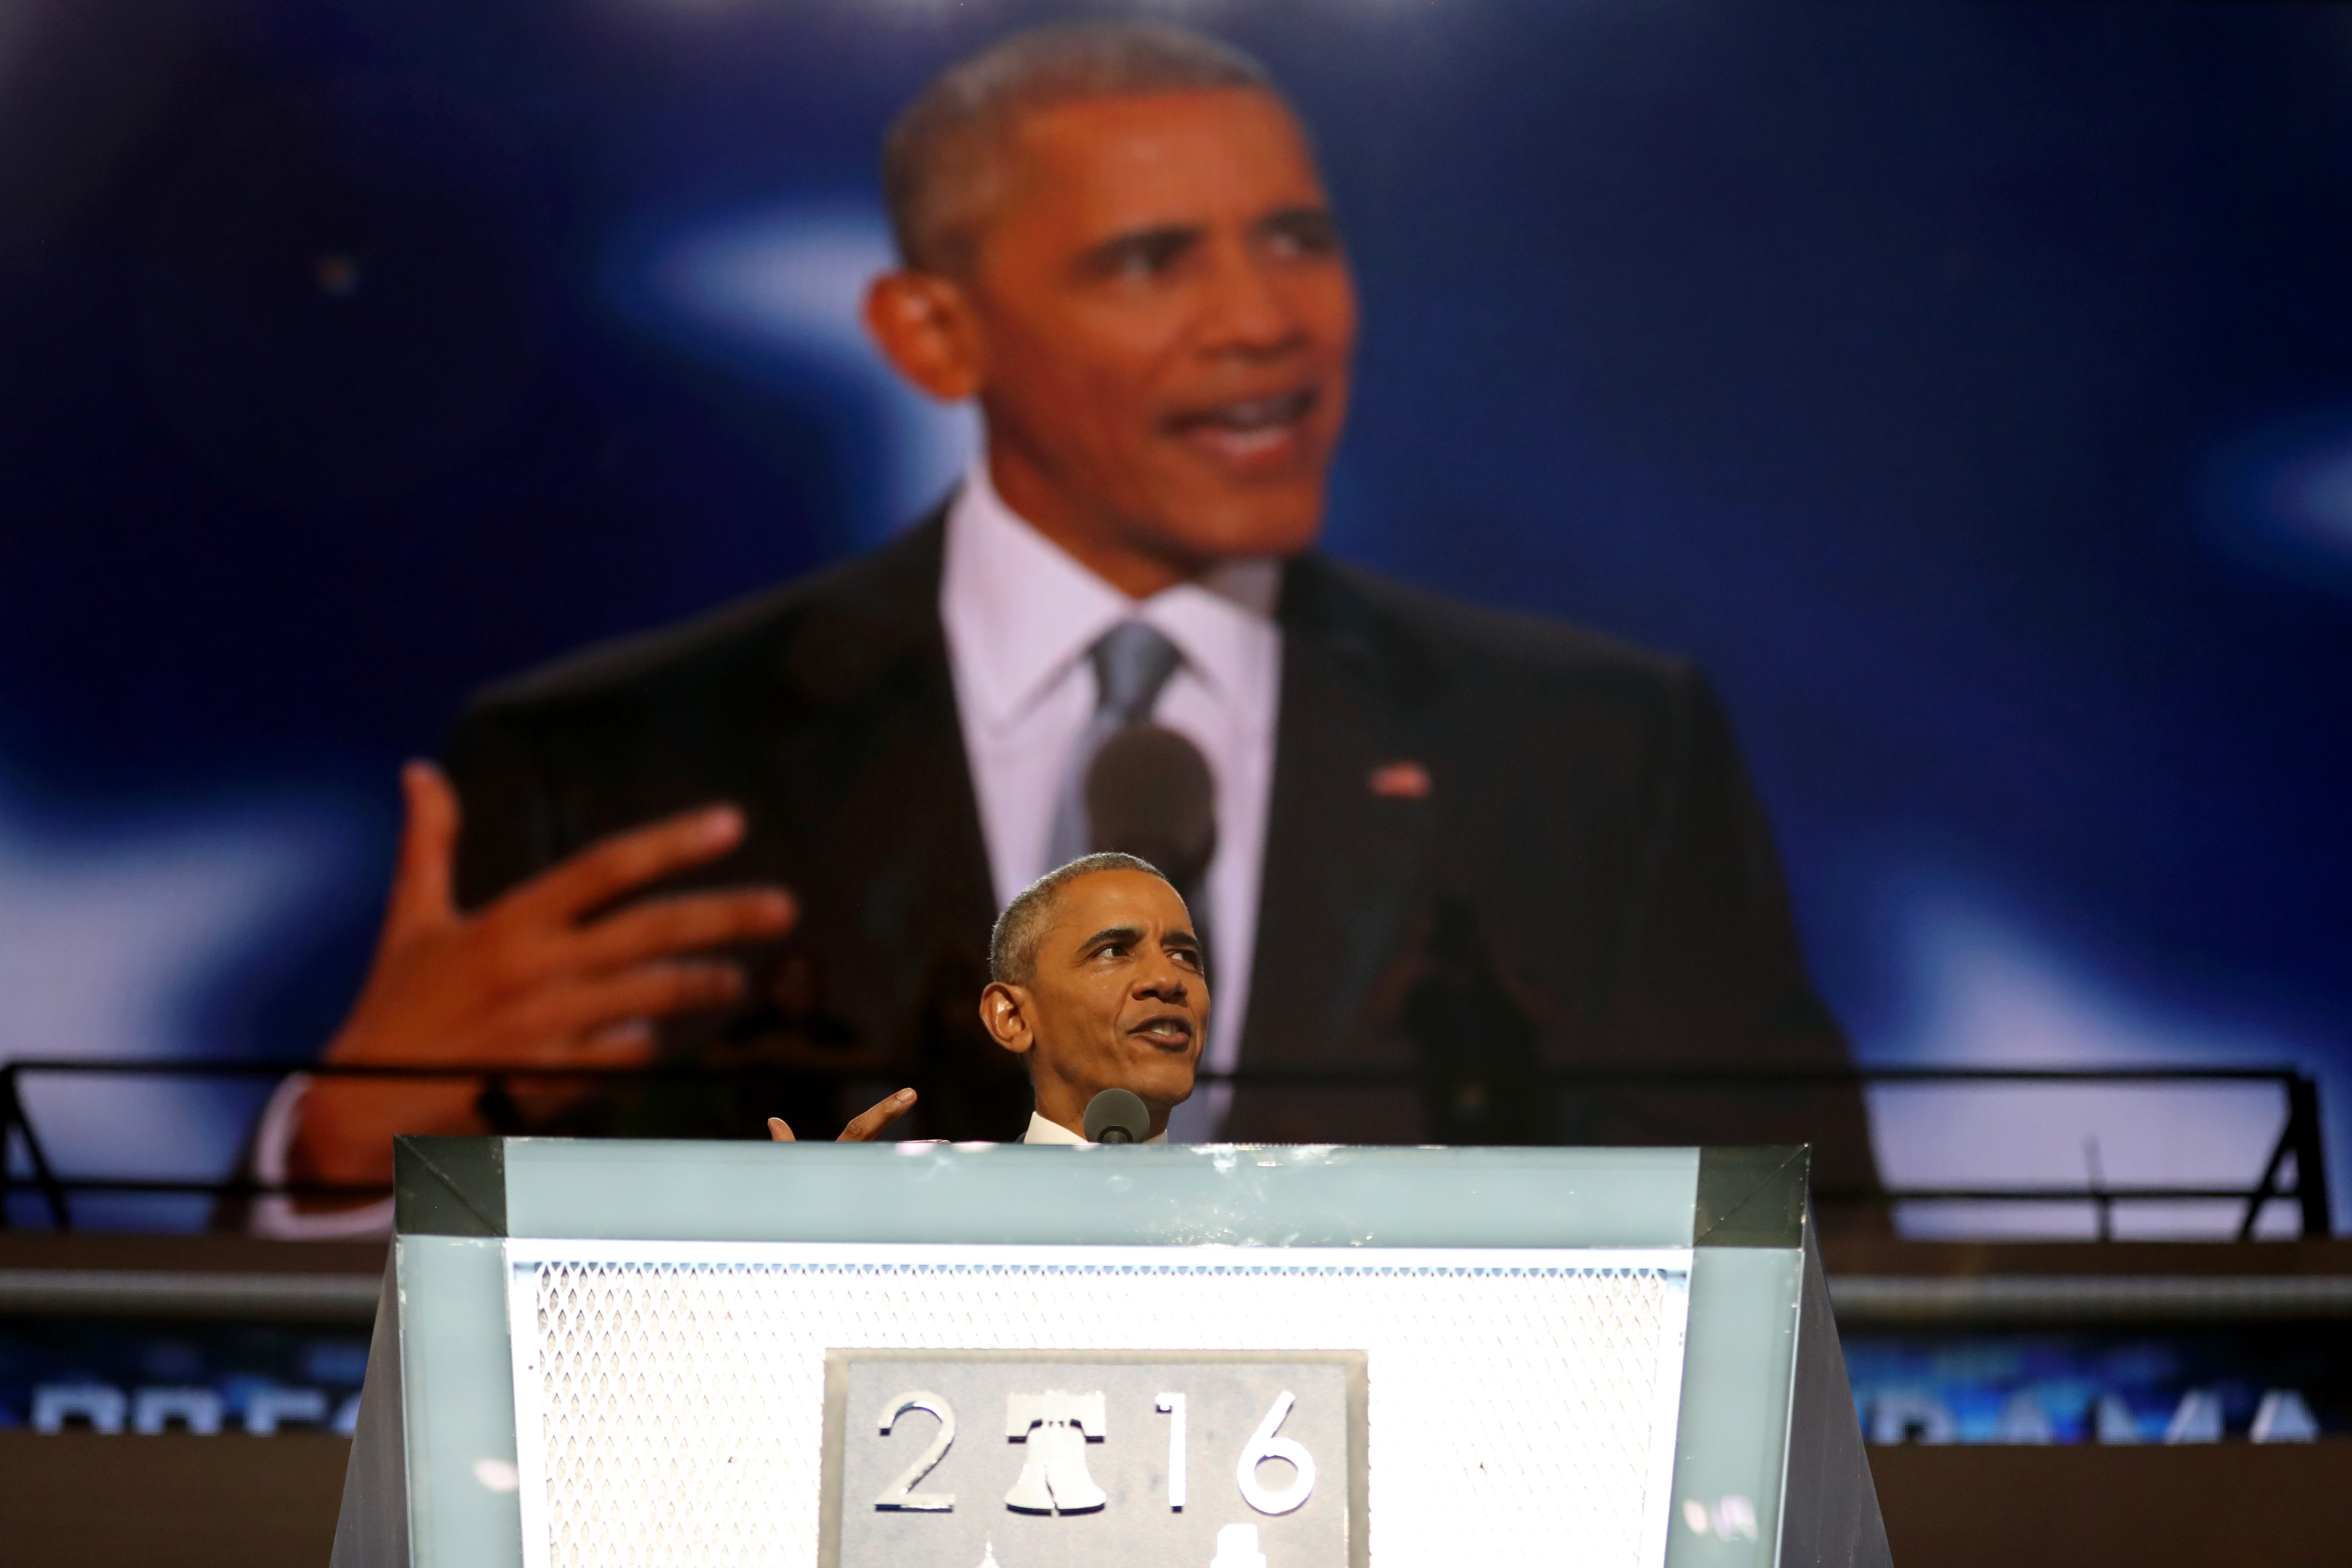 President Barack Obama at the 2016 Democratic National Convention.